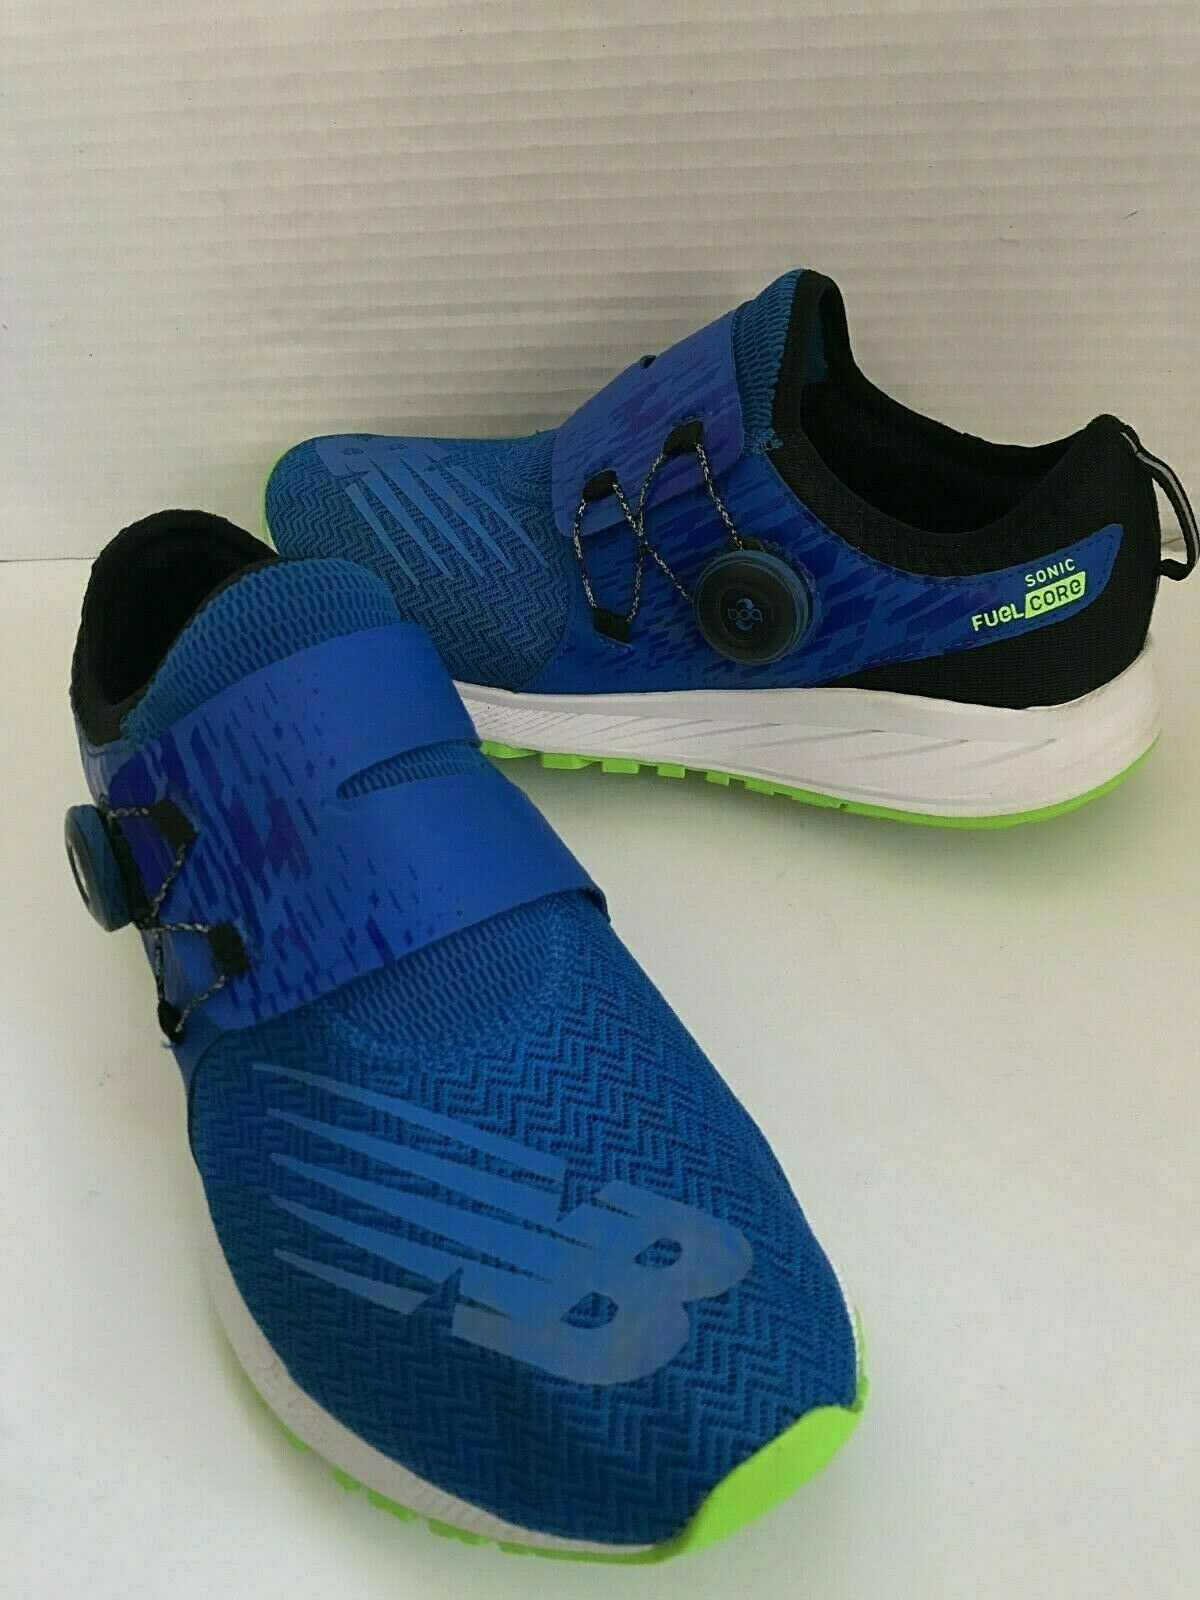 New Balance FuelCore Sonic Laceless BOA Running shoes bluee Green Mens Size 8.5 M